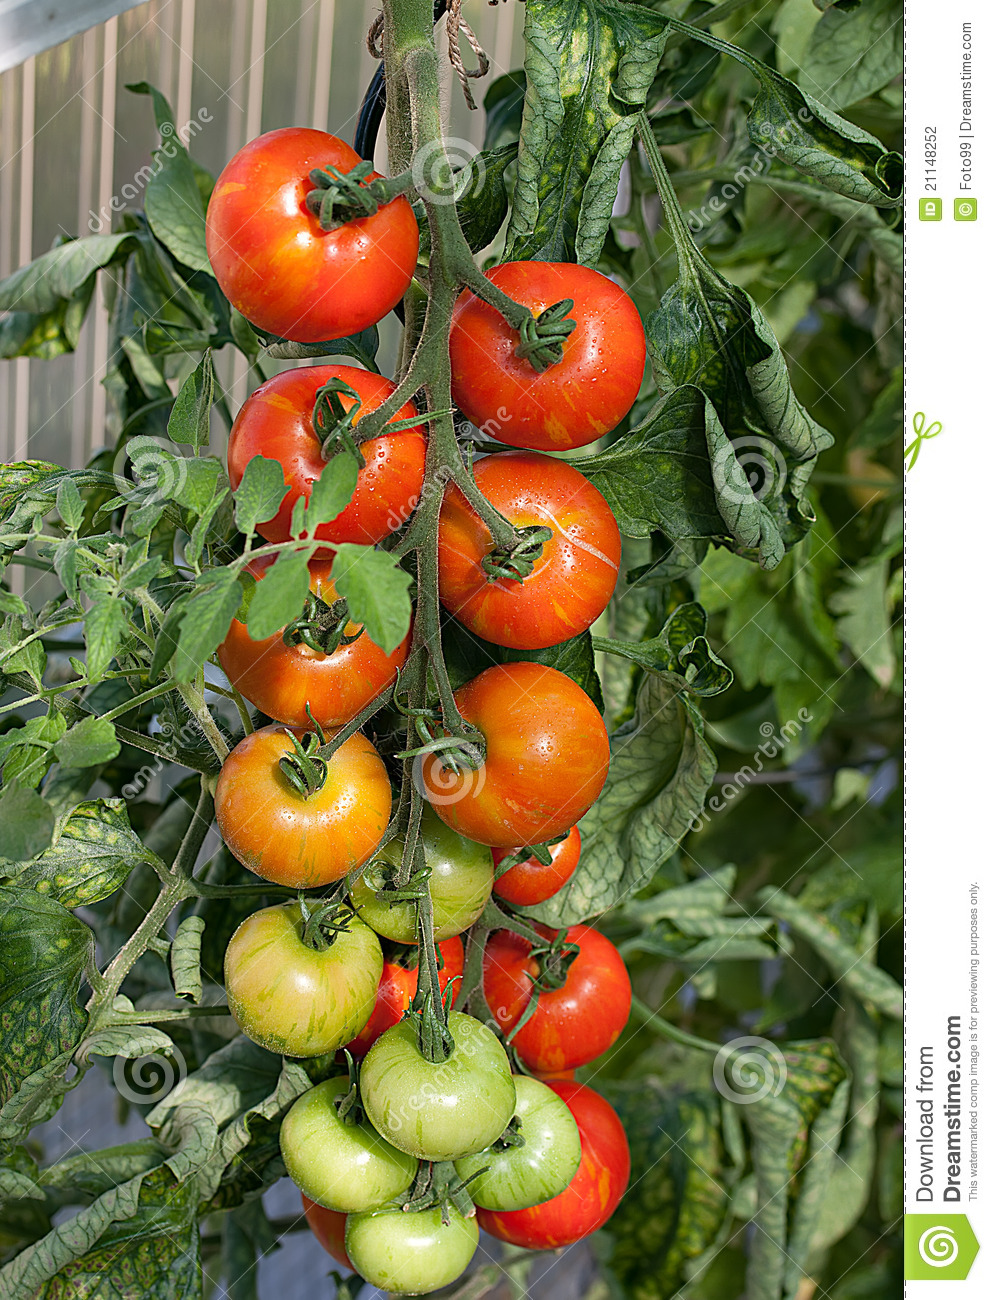 Tomato Cluster On Vine Stock Photography Image 21148252